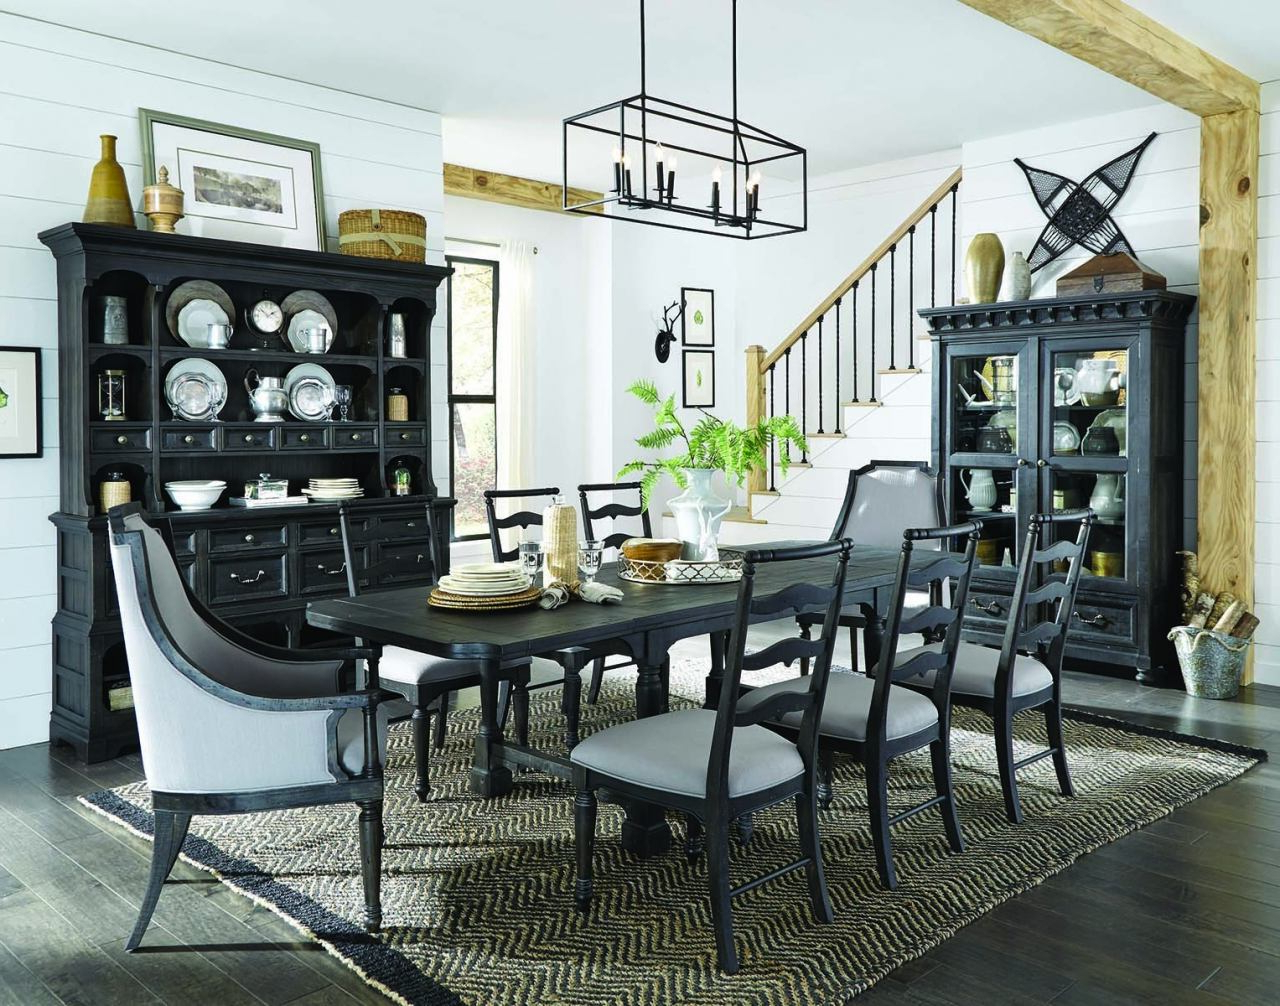 2017 Bedfo 3 Piece Dining Sets With Regard To Magnussen Furniture Bedford Corners 7Pc Rectangular Dining Set In Anvil  Black (View 1 of 20)